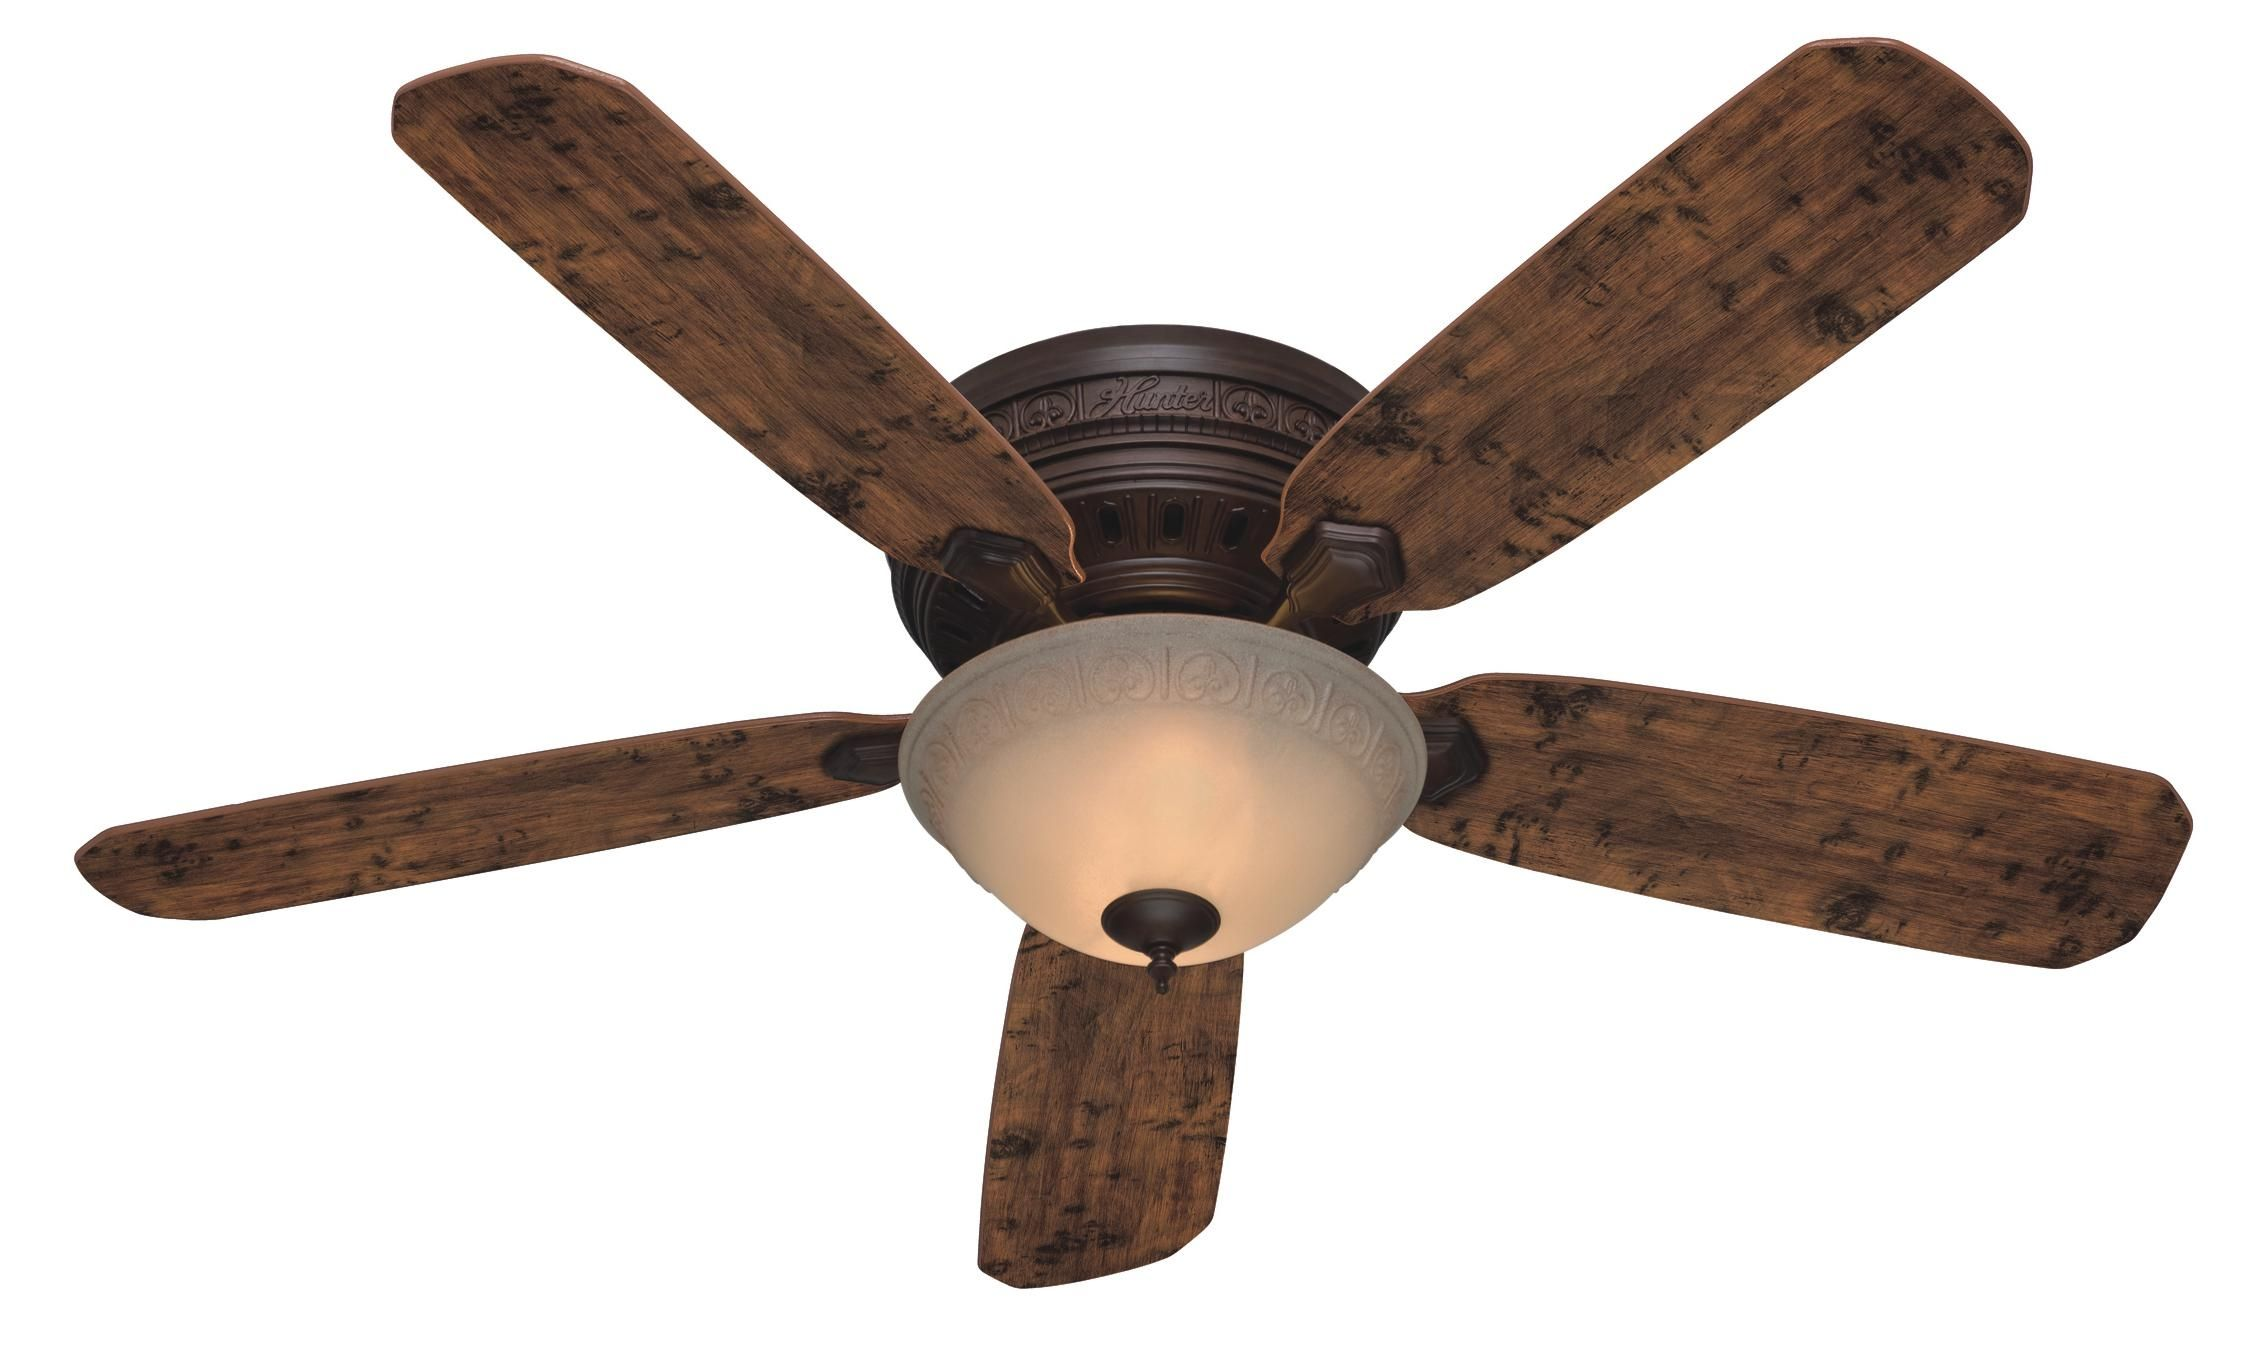 Unique Hunter Ceiling Fans At Home Depot Insured By Ross